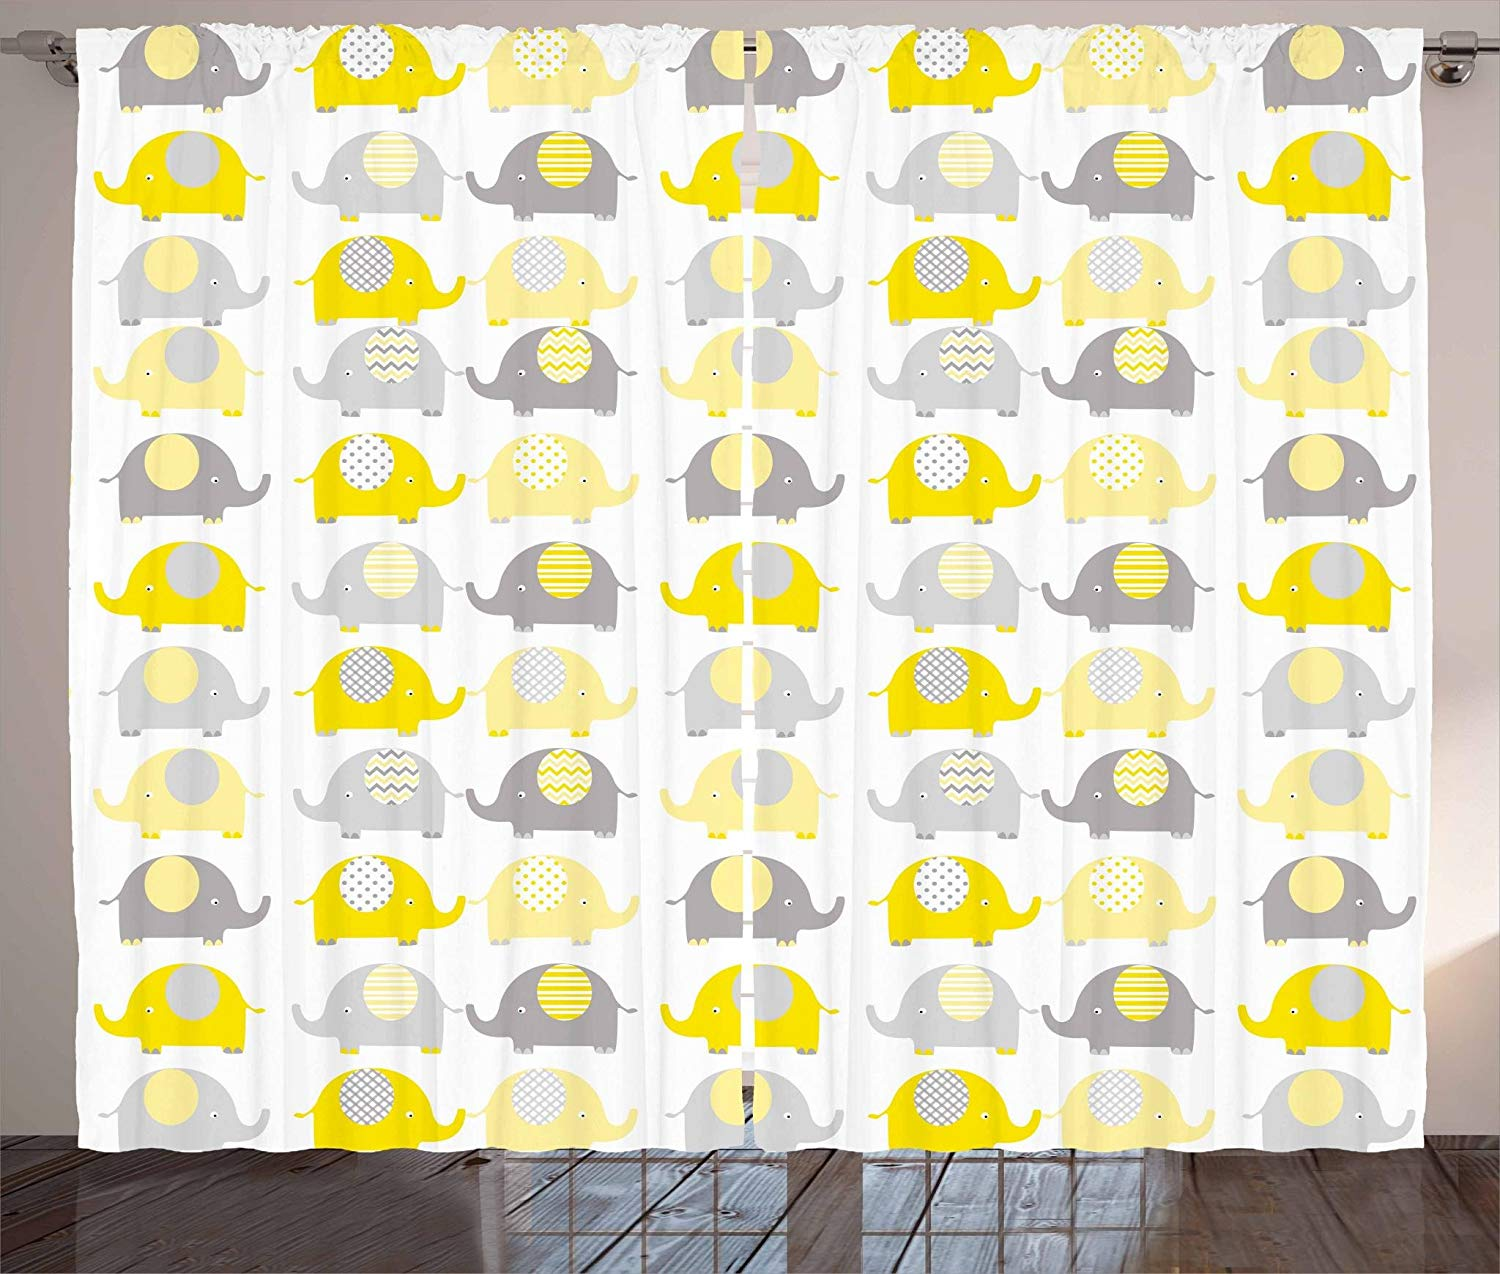 Us 22 92 45 Off Nursery Curtains Yellow Grey Cute Elephant Cartoon Animals With Diffe Patterns Asia Fauna Living Room Bedroom Window D In